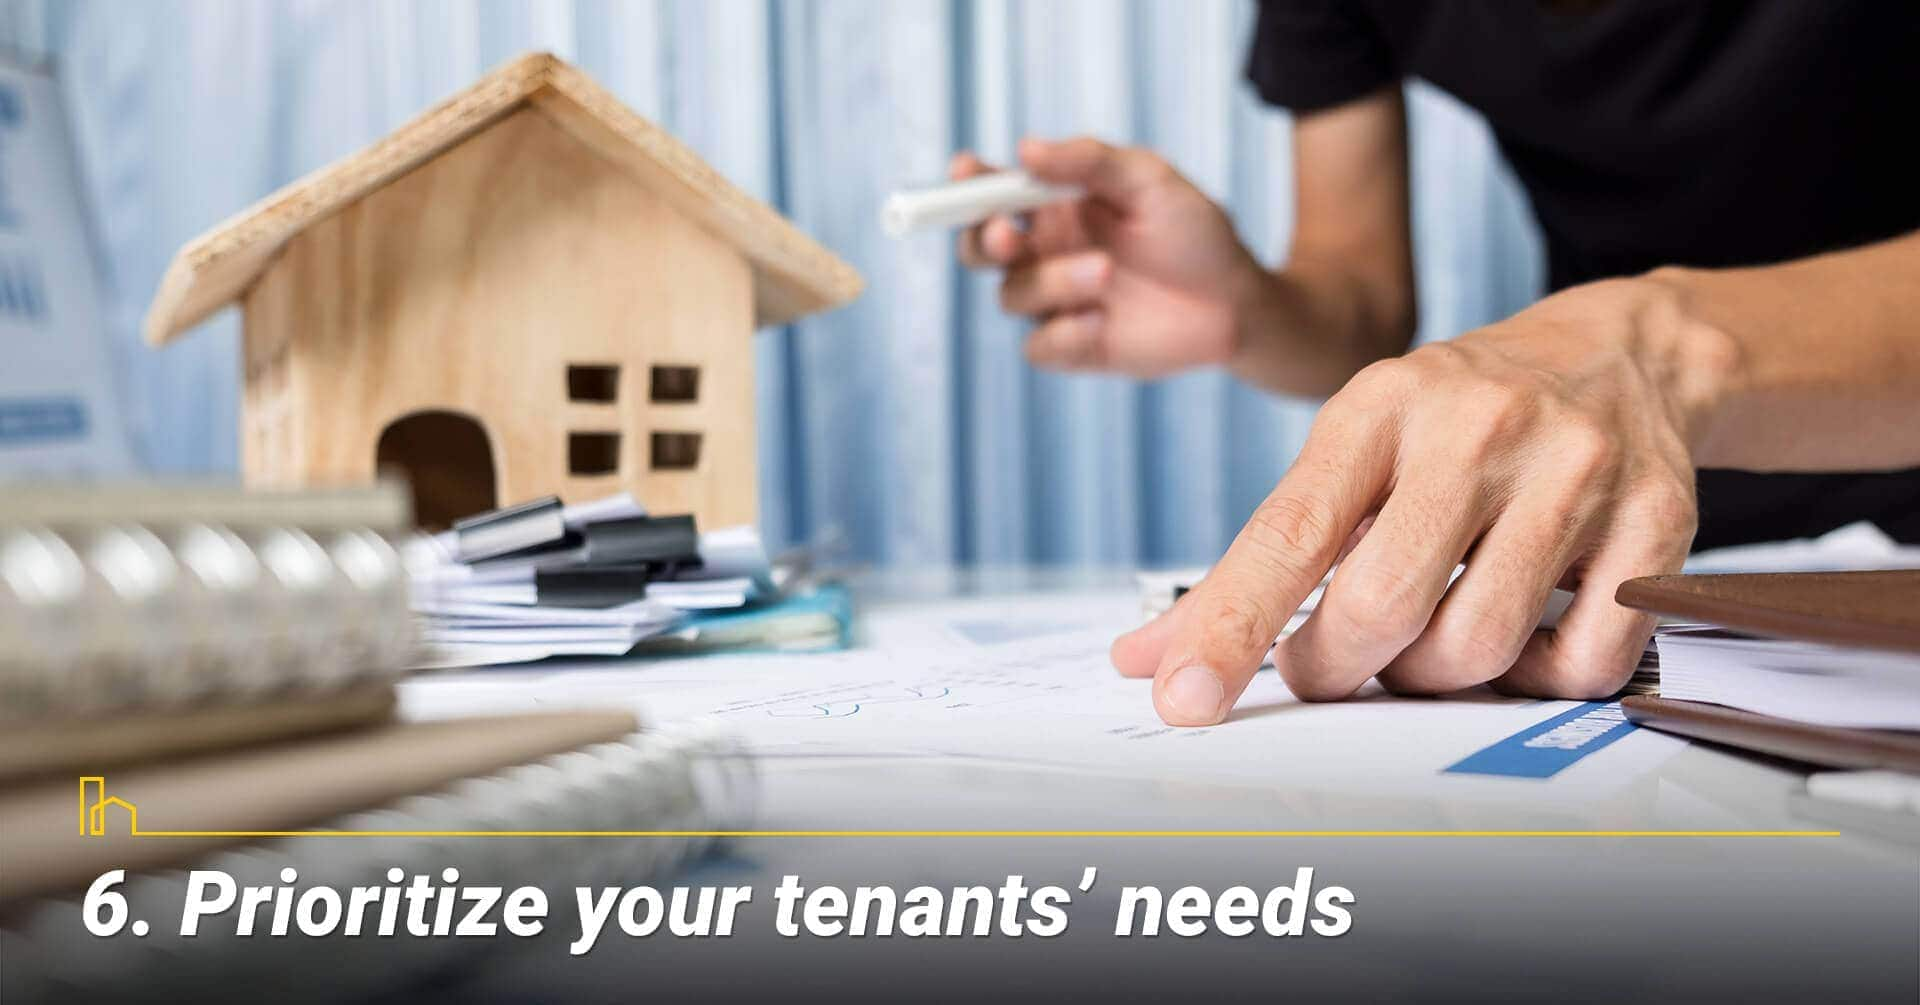 Prioritize your tenants' needs, know what your tenants need